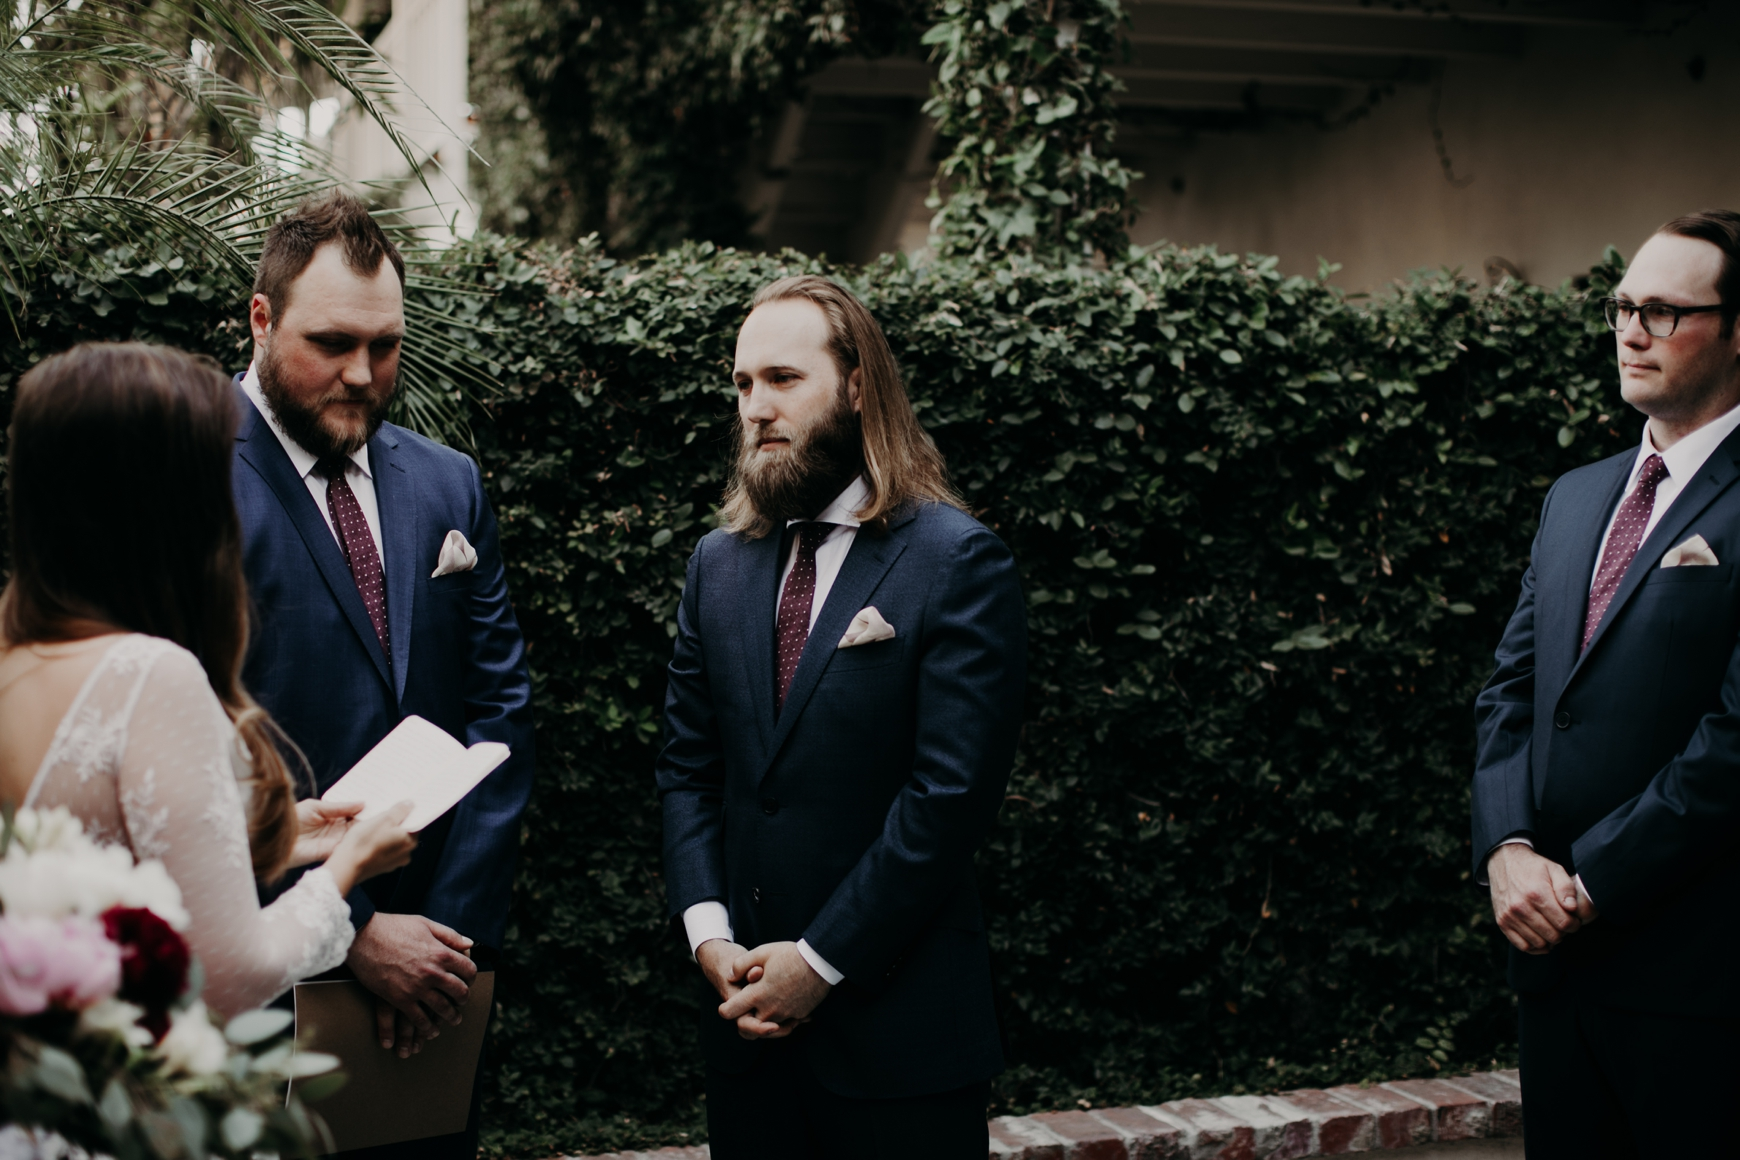 The Colony Palms Hotel Palm Springs Wedding Jaclyn & Tyson Emily Magers Photography-201.jpg